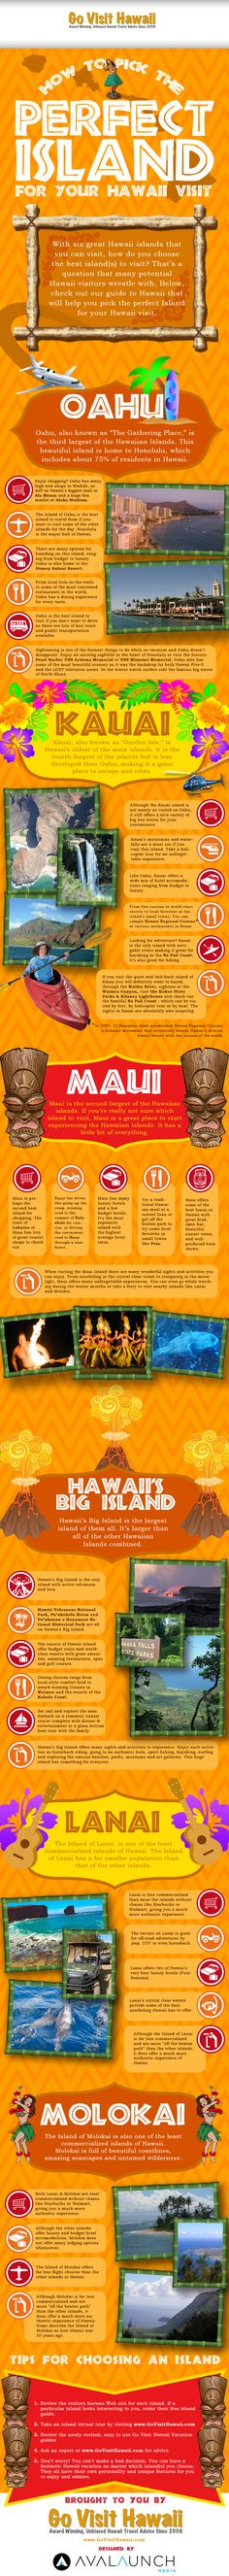 Hawaiian Vacation: Which Island To Visit? This is a great infographic for learning which island in Hawaii is the one of your dreams! OAHU is the BEST! Hawaii Honeymoon, Hawaii Vacation, Vacation Places, Hawaii Travel, Vacation Destinations, Dream Vacations, Vacation Trips, Vacation Spots, Travel Usa